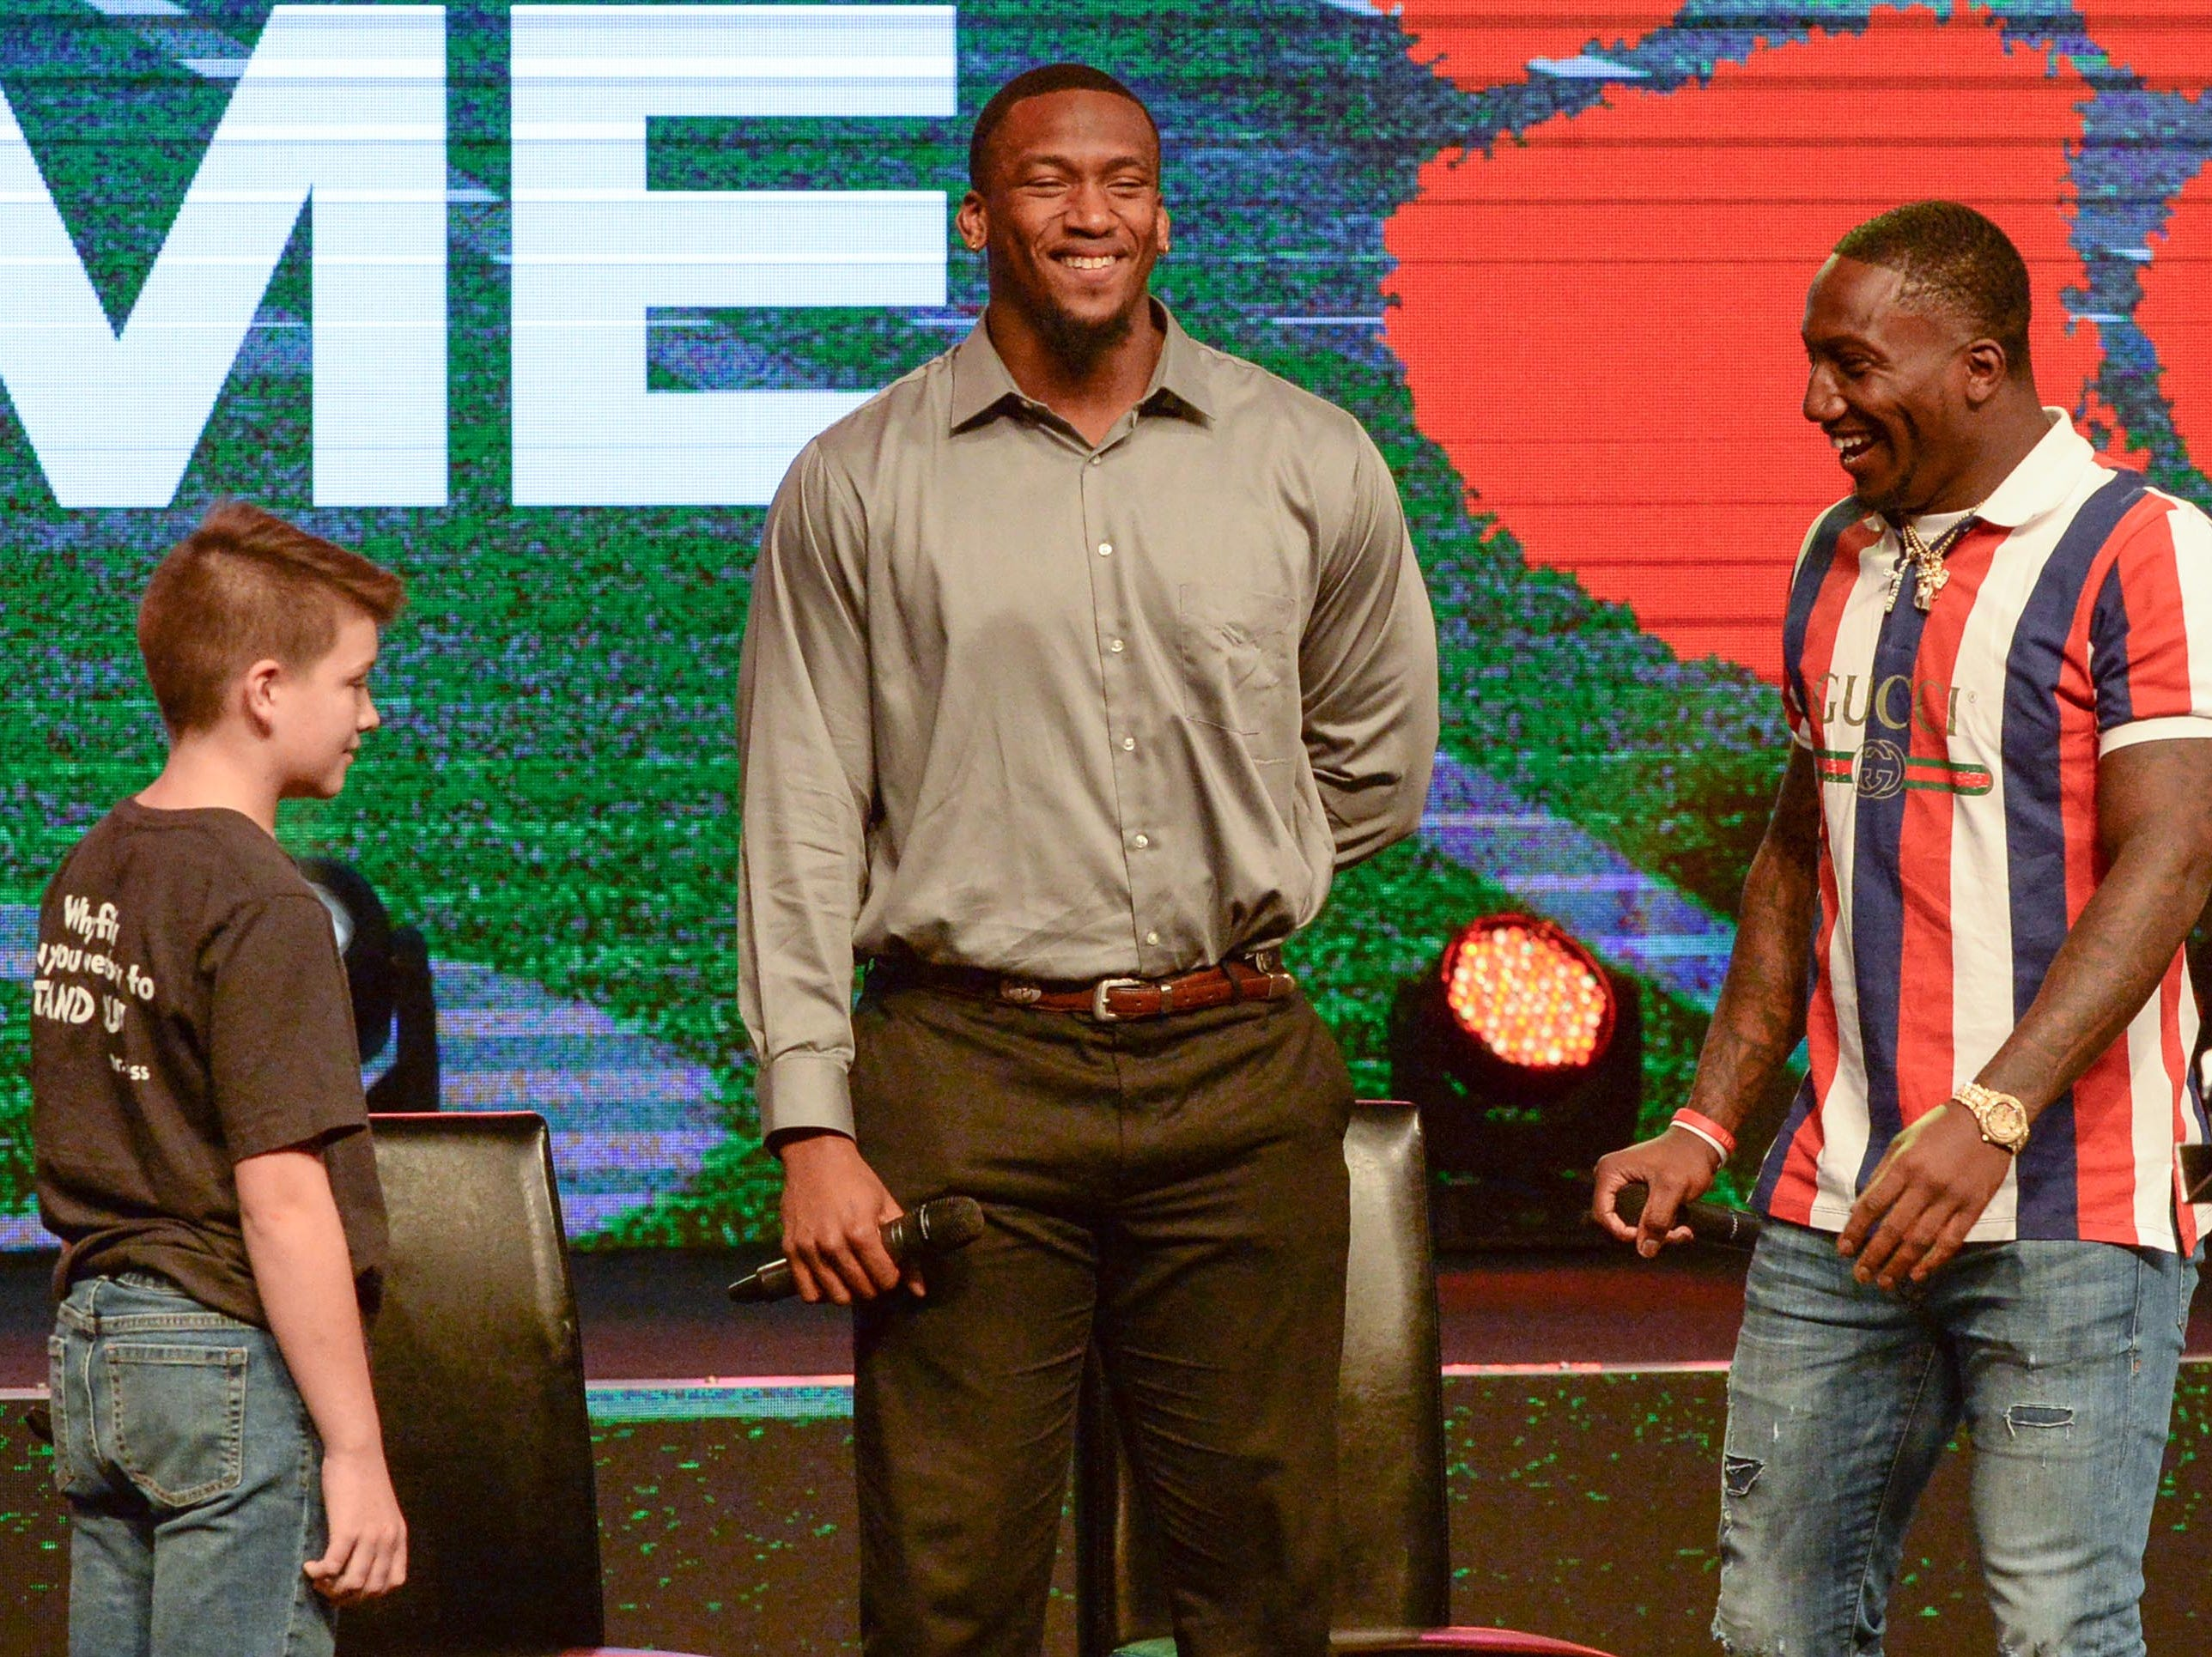 """Former Clemson Tiger Clelin Ferrell, left, and Deebo Samuel, right, South Carolina Gamecock football player, listen to Dax Allen of La France Elementary ask a question about what they would do with a large amount of money from professional football, during the Coaches 4 Character event at Relentless Church in Greenville Tuesday. """"Put it in the bank,"""" both said."""